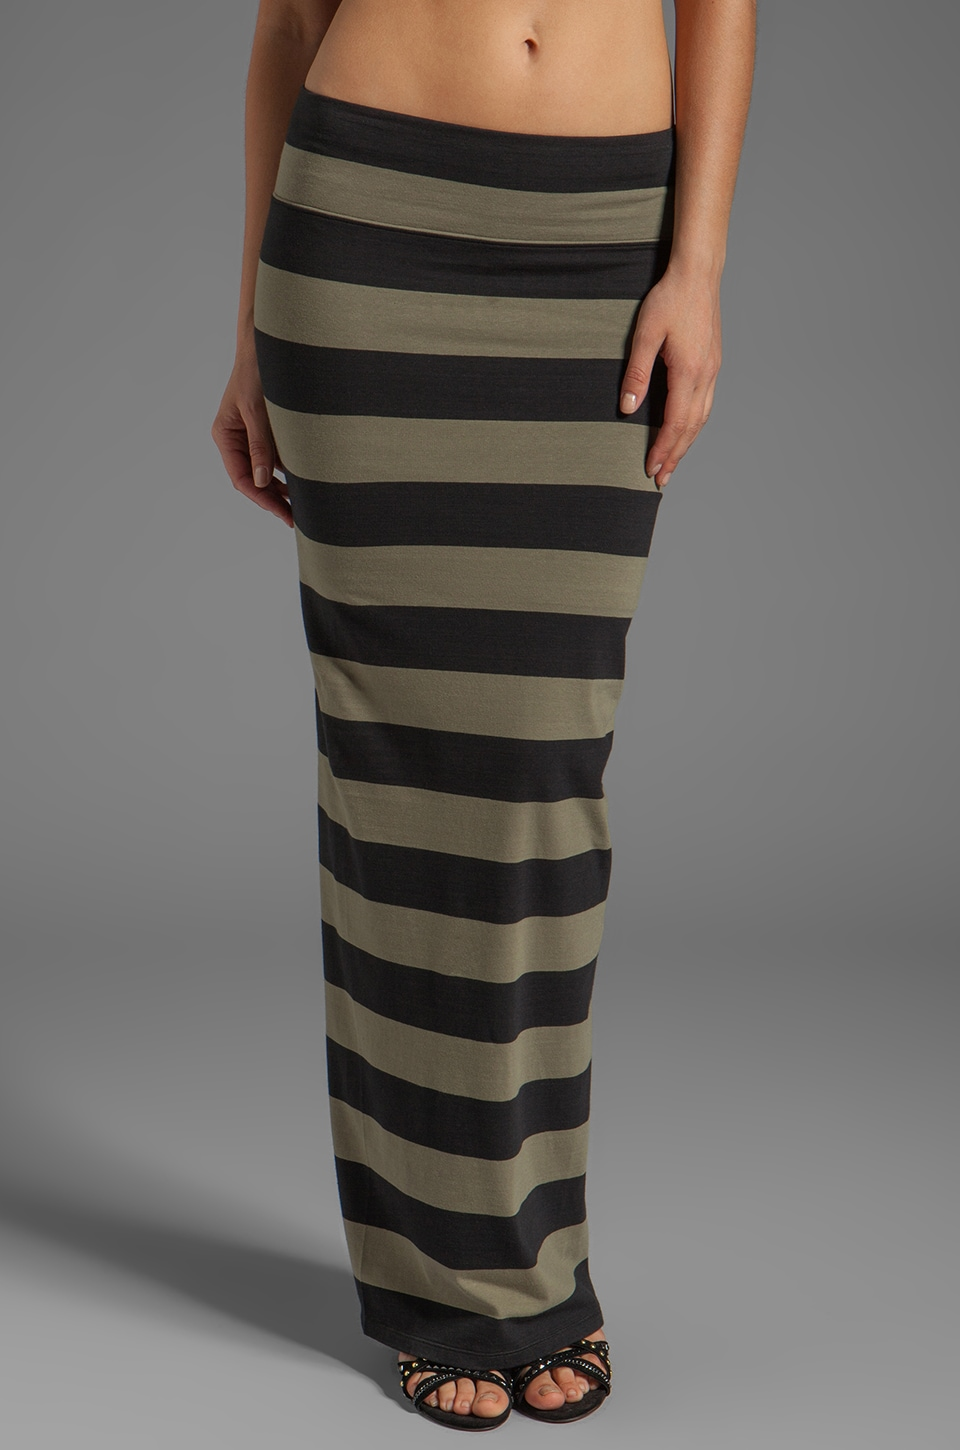 Free People Striped Column Maxi Skirt in Army/Washed Black Combo